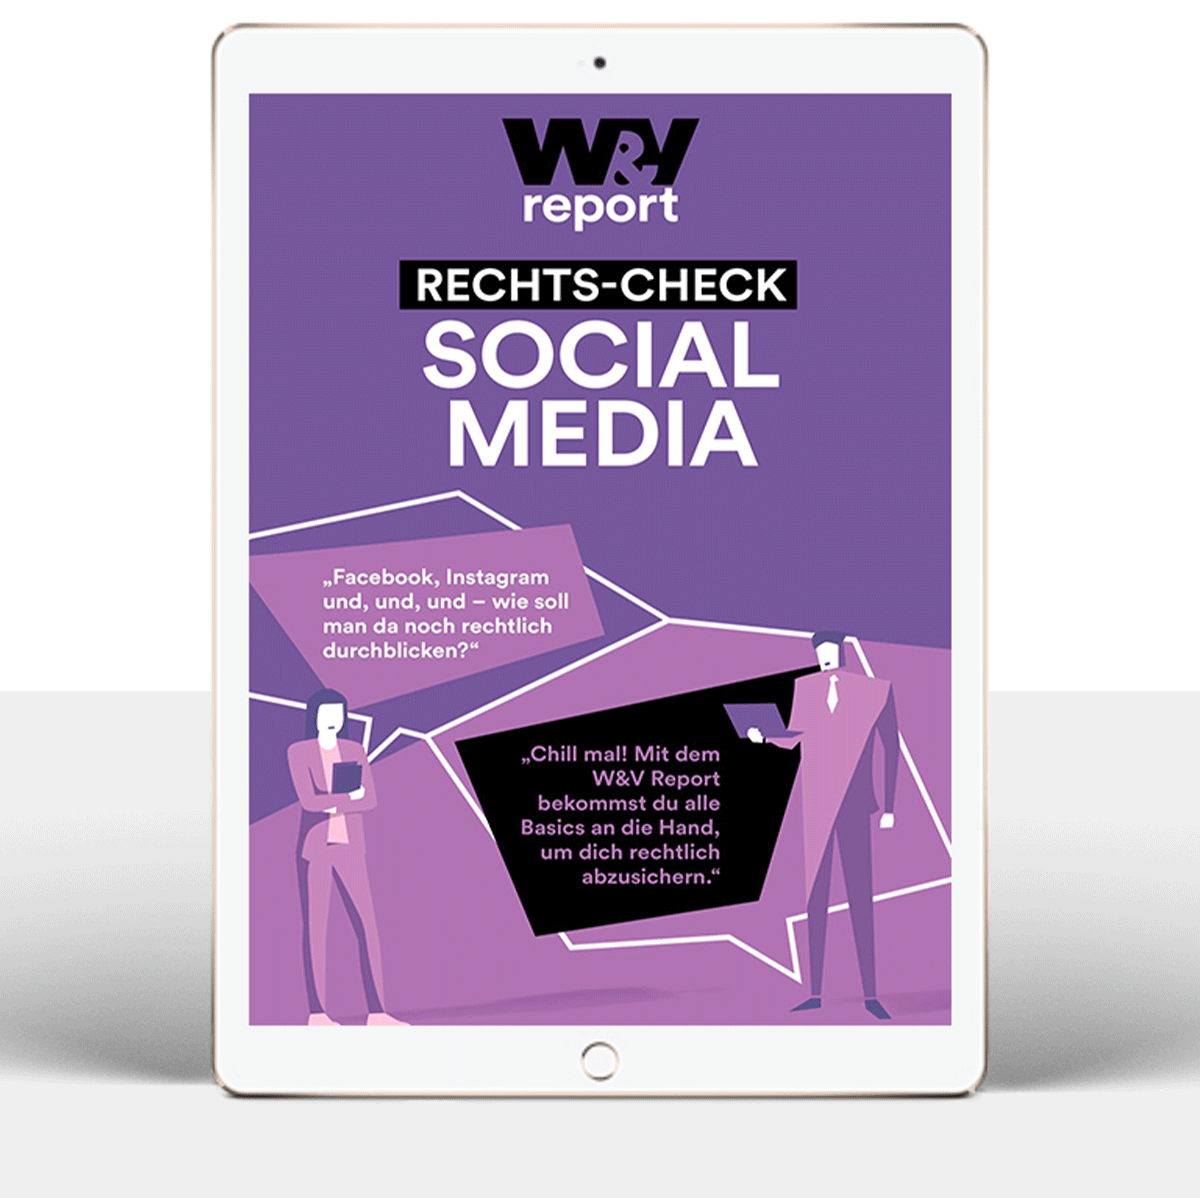 W&V Report: Rechts-Check Social Media